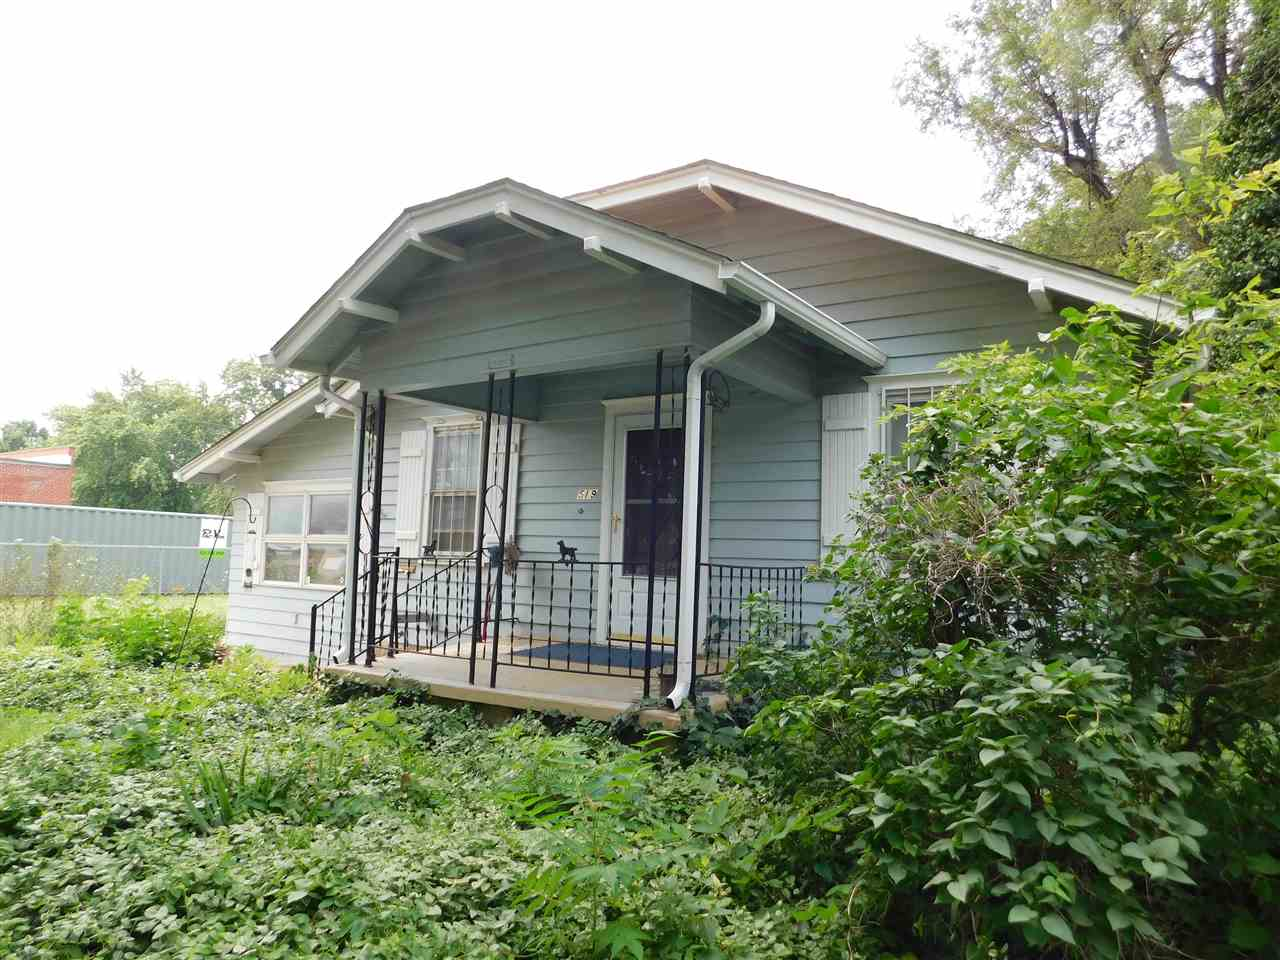 Bungalow,(2) bedroom (1) bath with all appliances staying including washer and gas dryer. Home has a